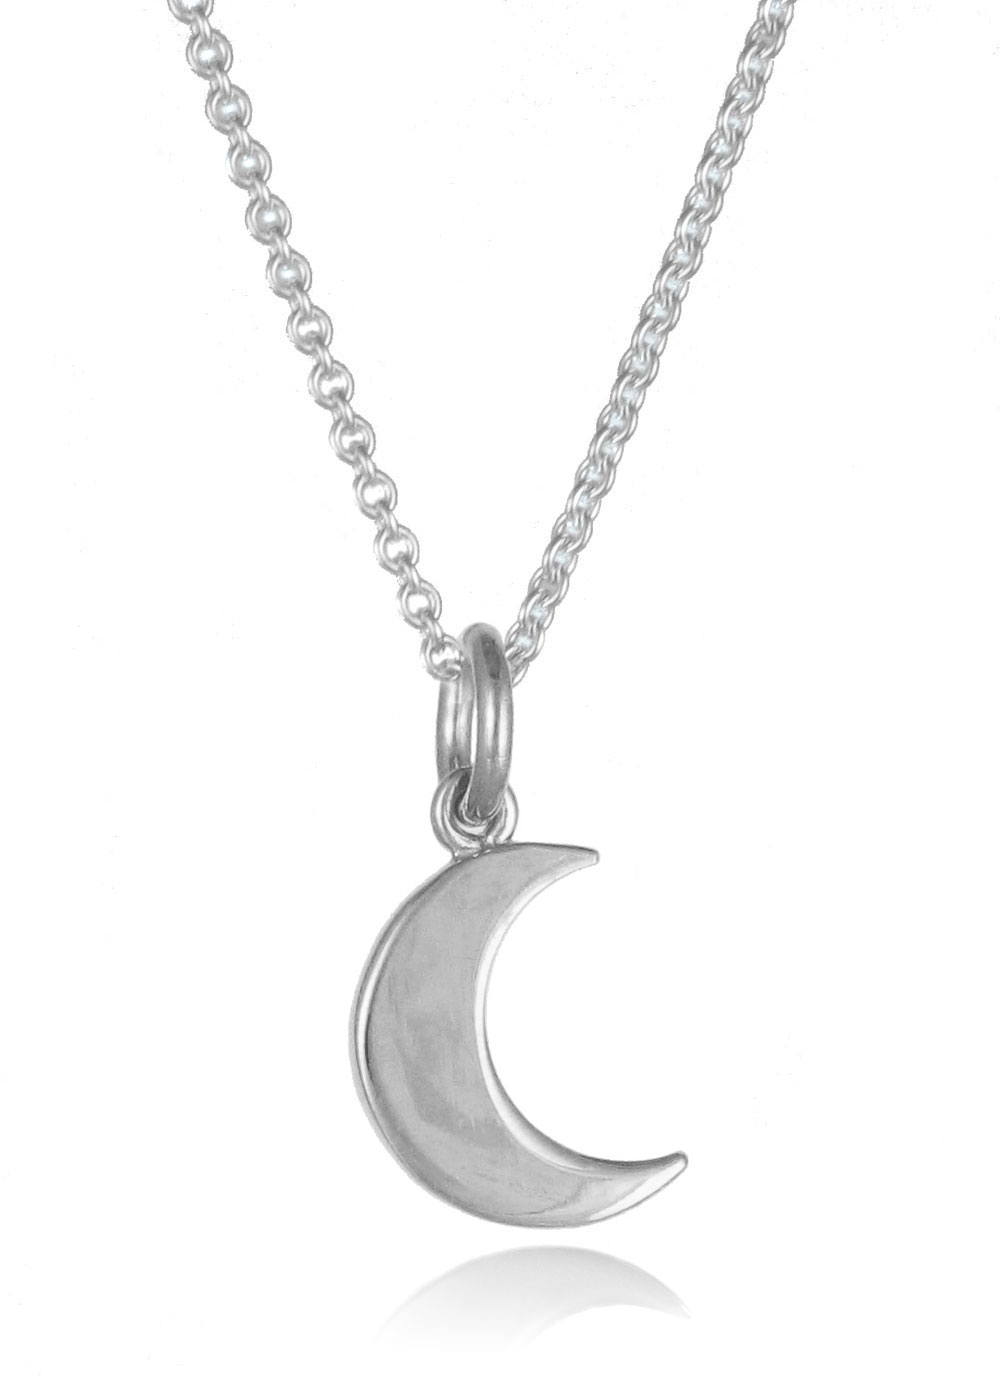 full eclecticeccentricity in by eccentricity necklace eclectic glow the moon original product dark pendant